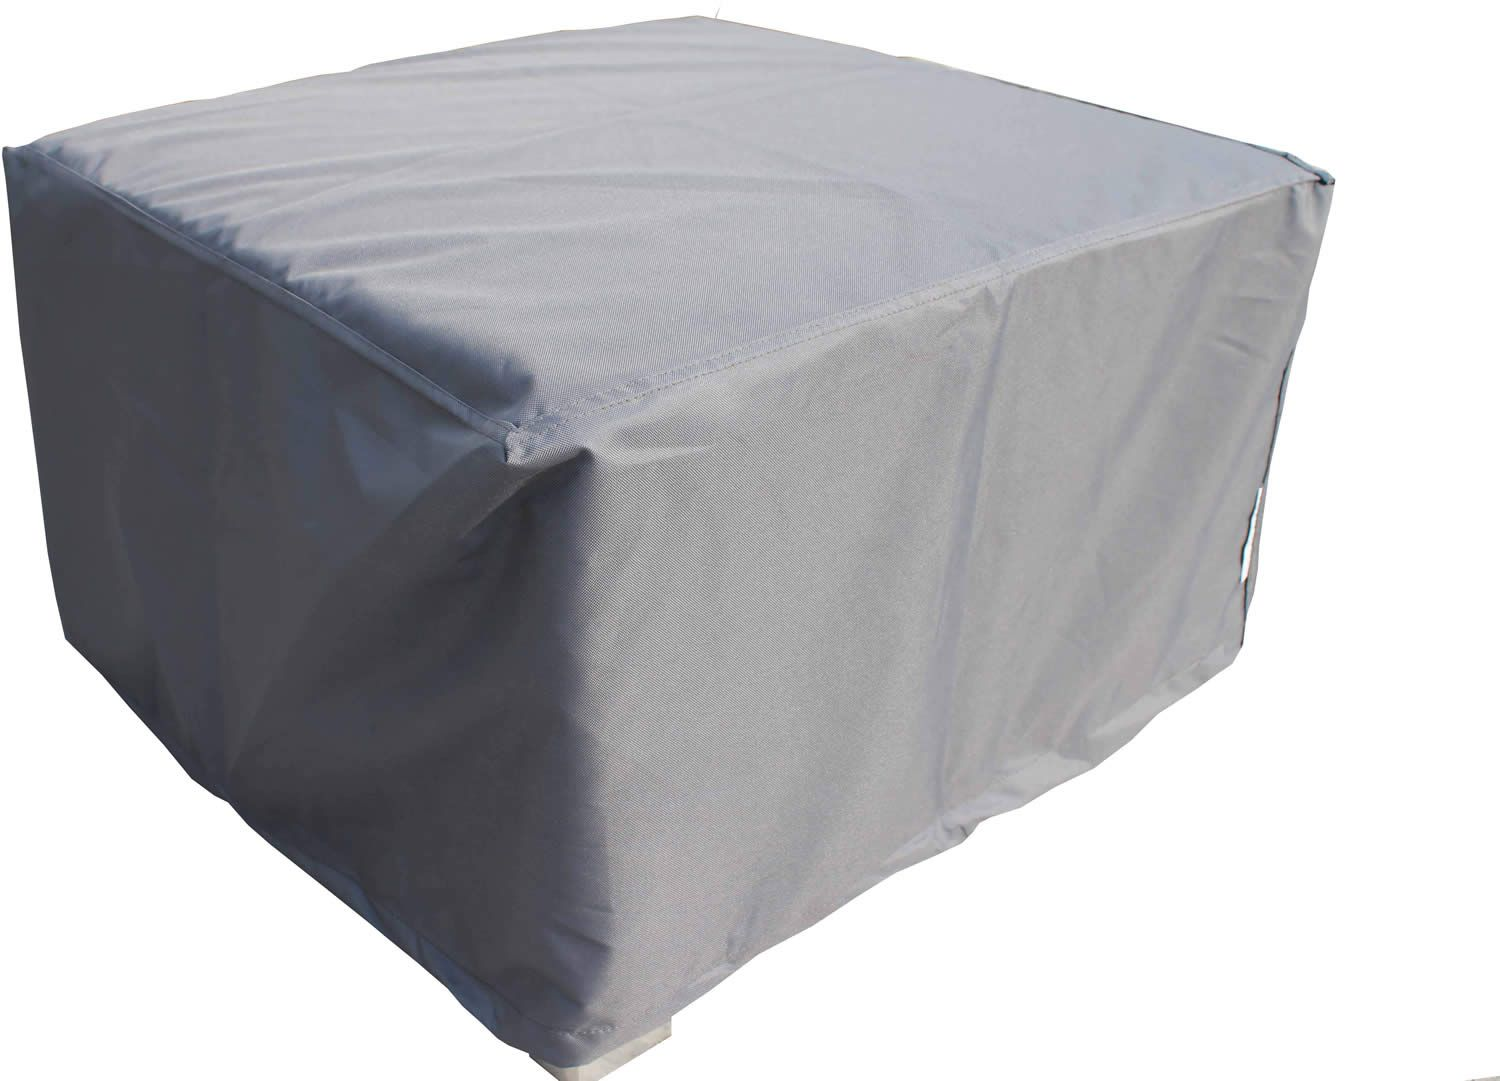 covers outdoor furniture. Outdoor Garden Furniture Covers. Covers U